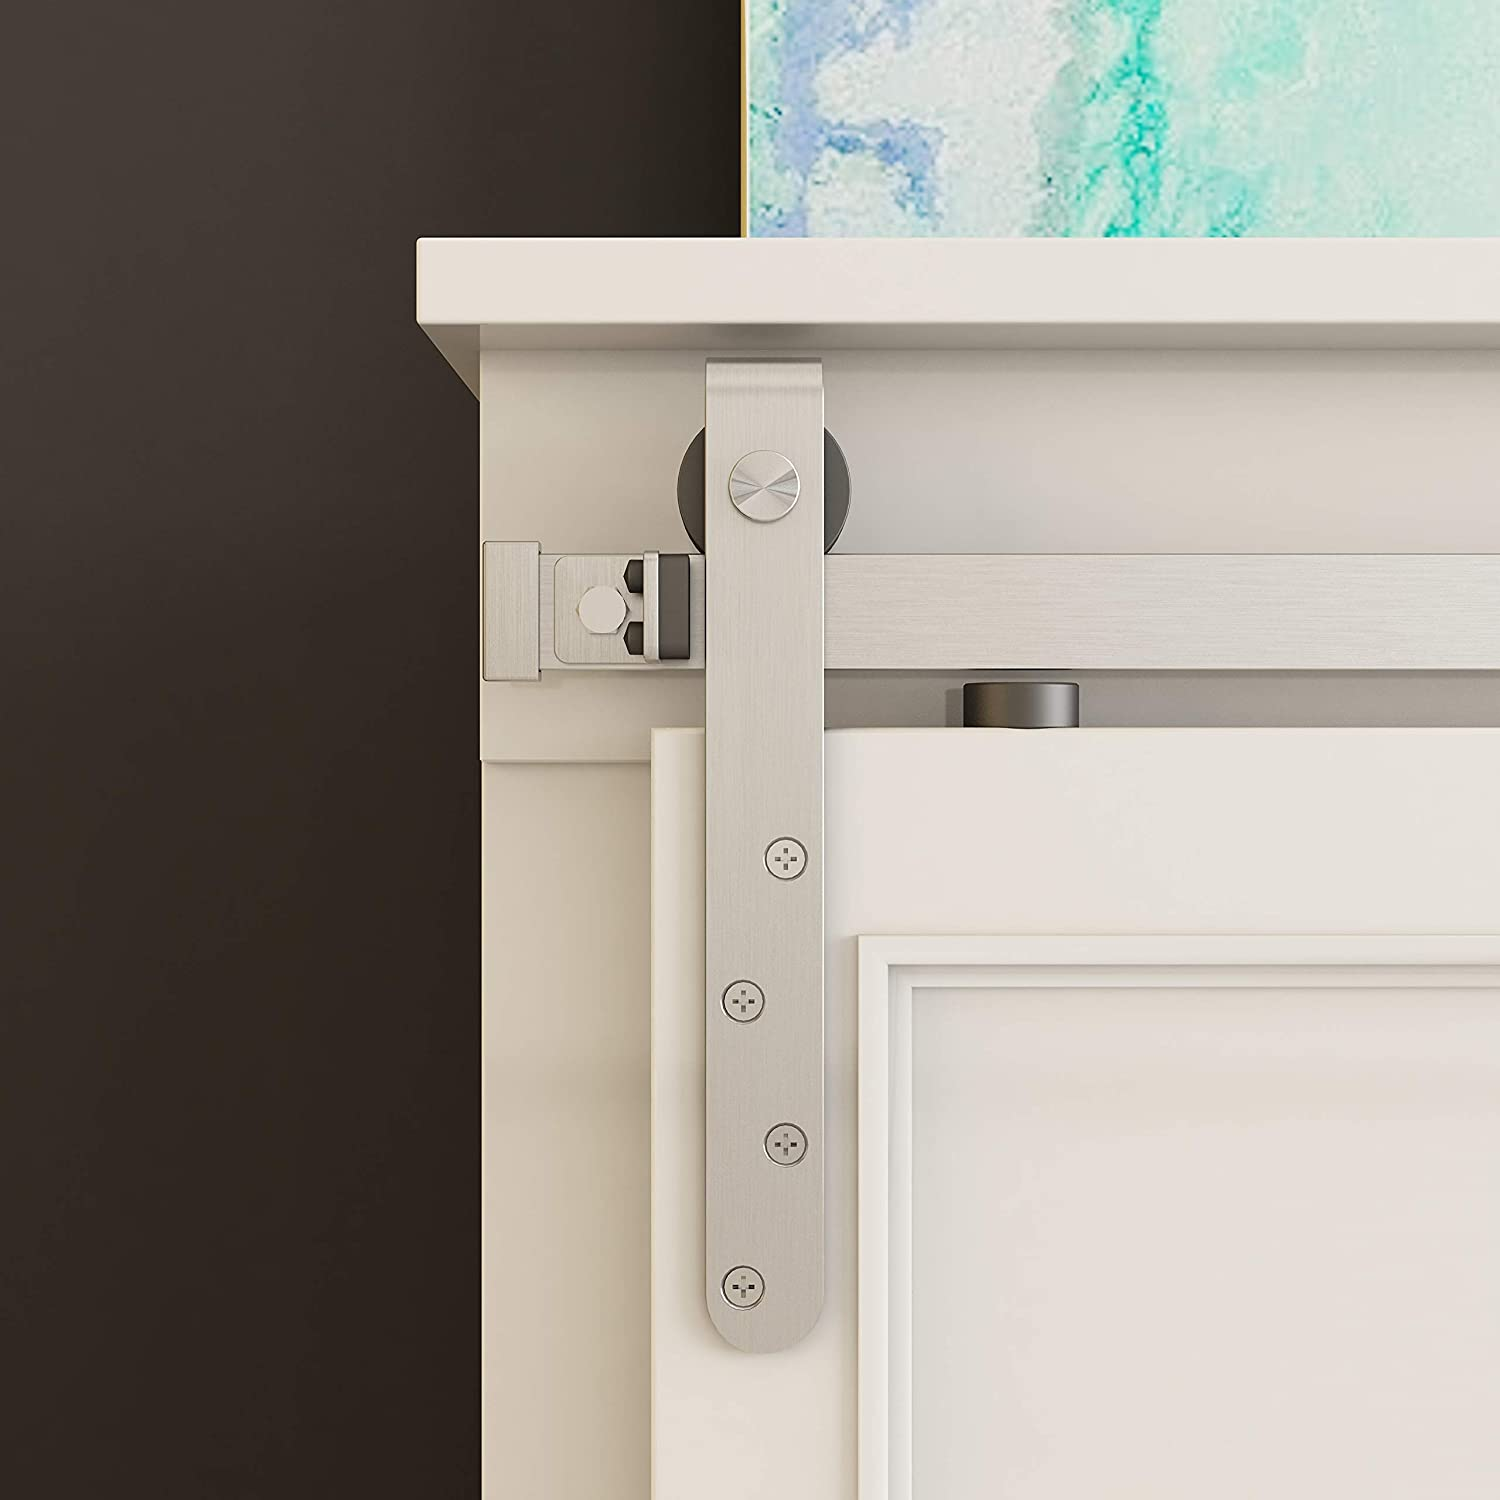 5 ft Mini Cabinet Barn Door Hardware Sliding Double Door Kit Architectural Products by Outwater Oil Rubbed Bronze